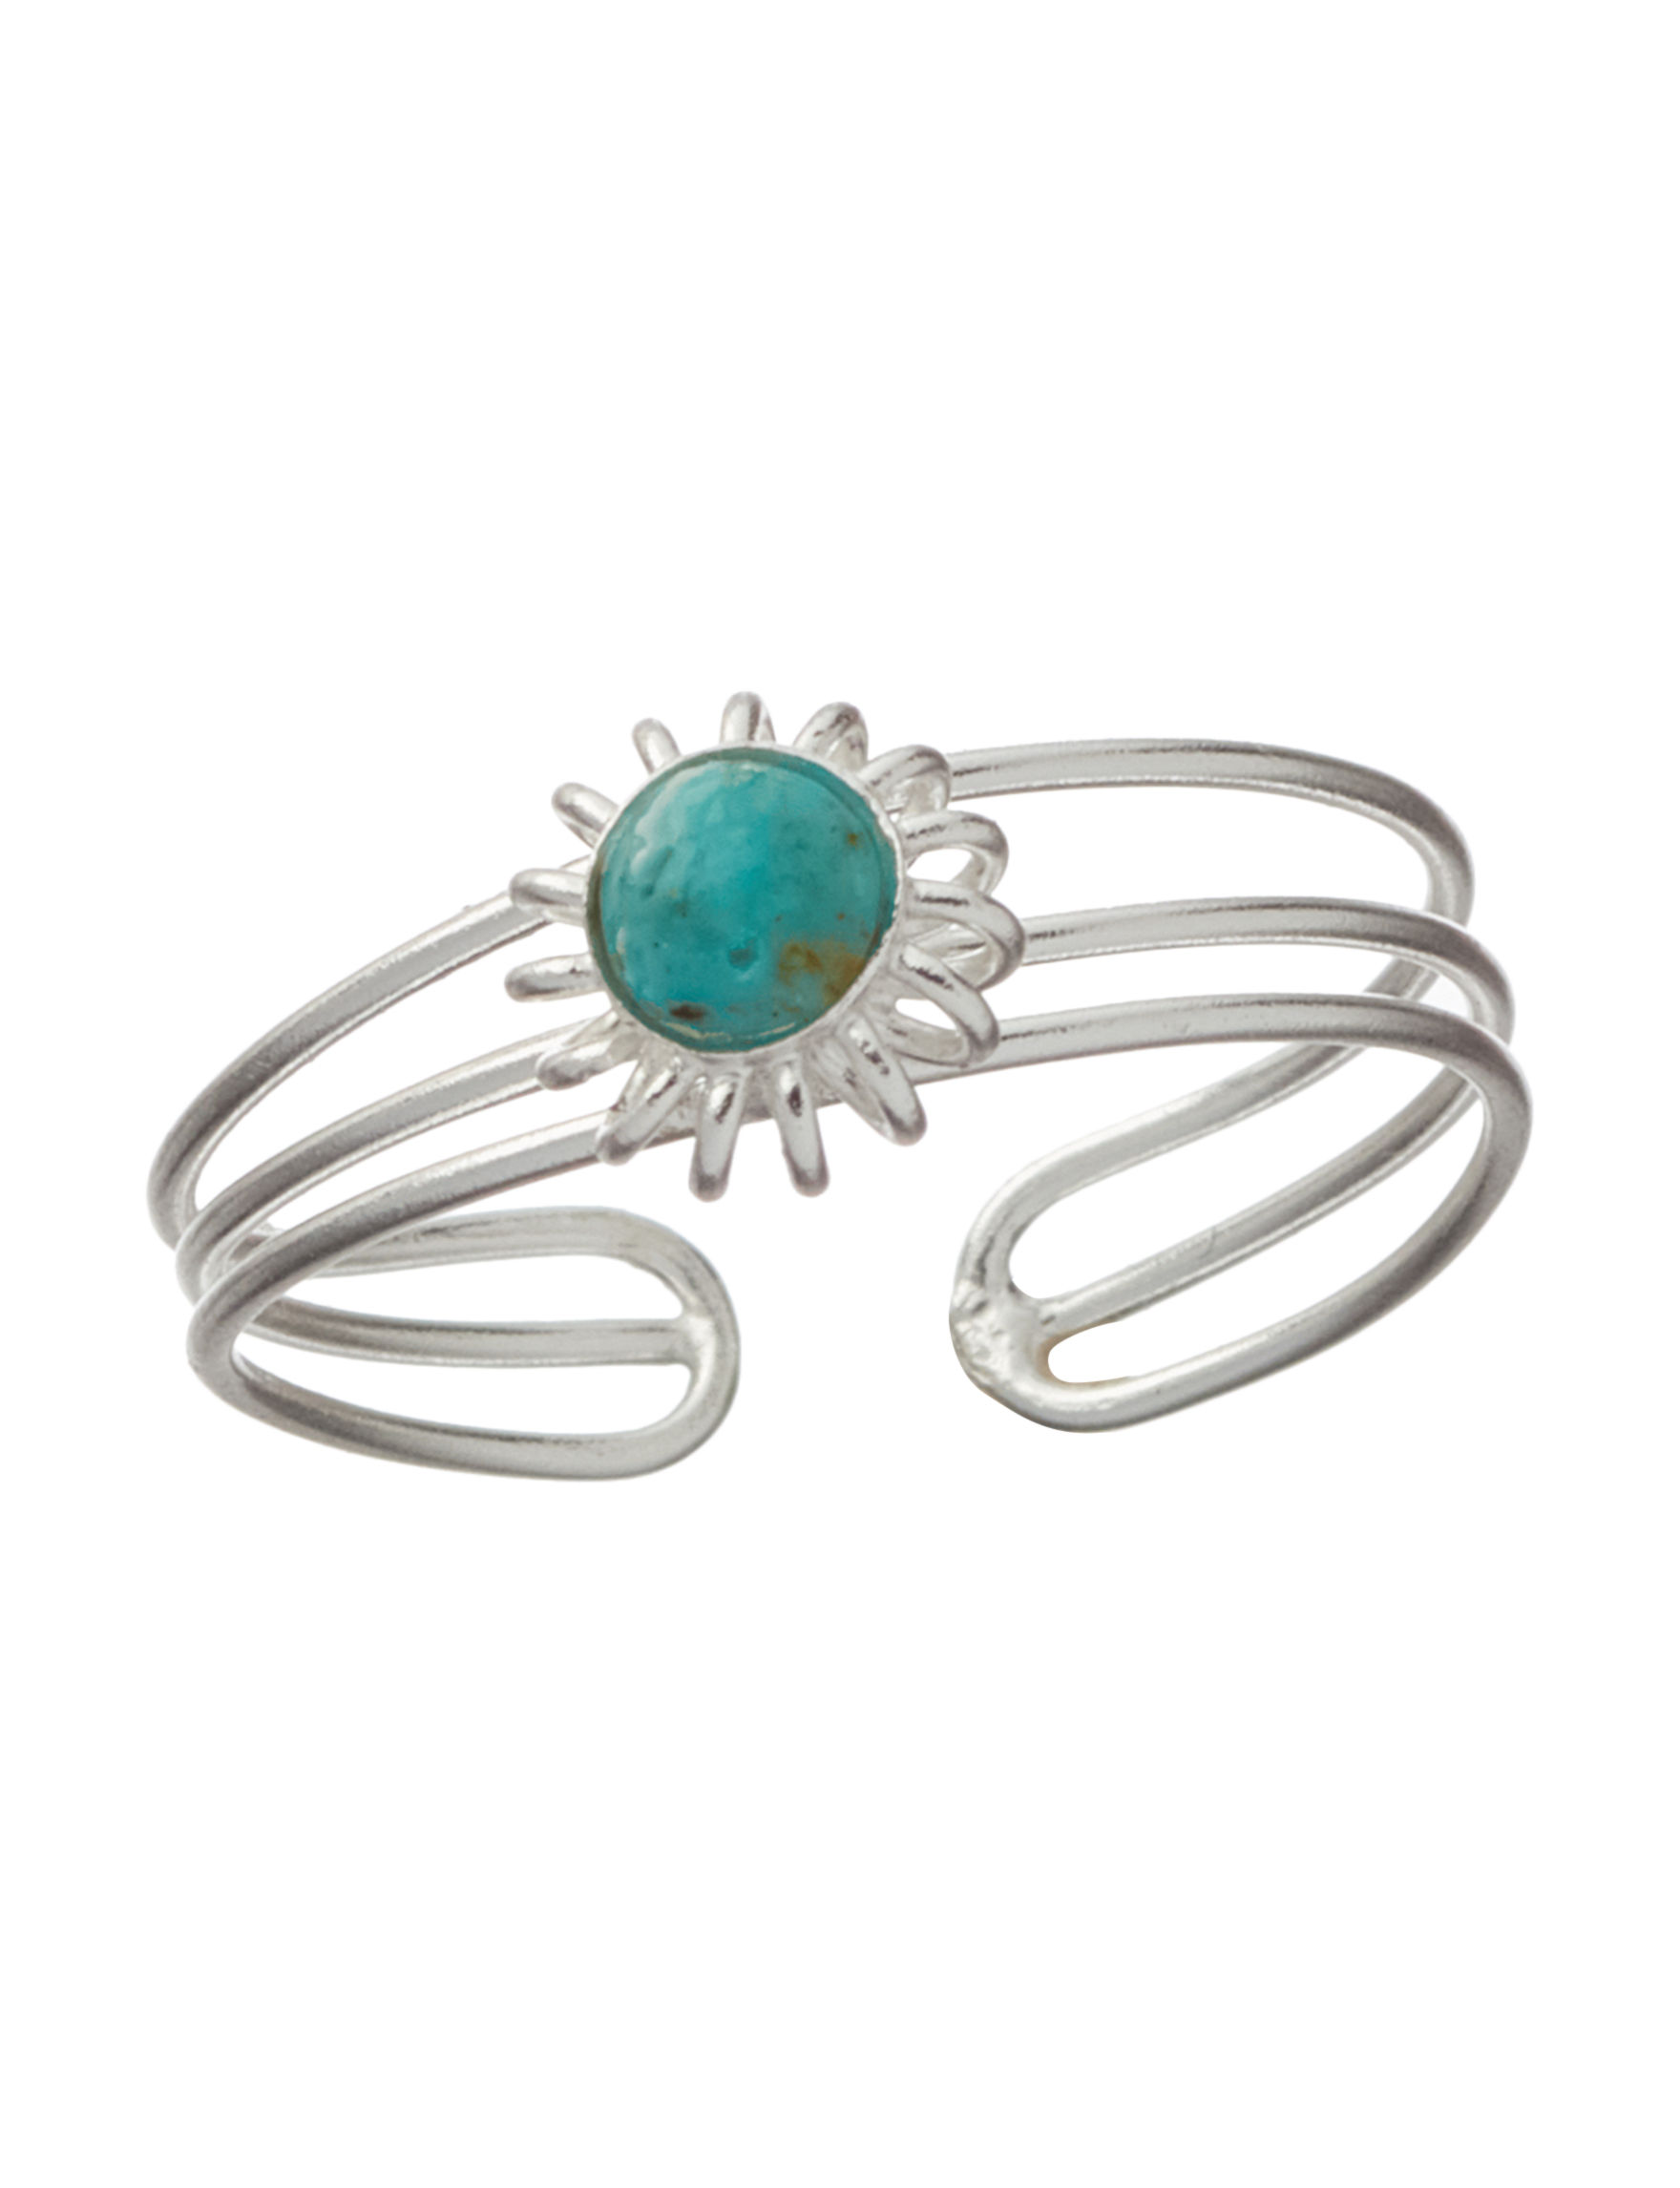 Marsala Turquoise Toe Rings Fine Jewelry